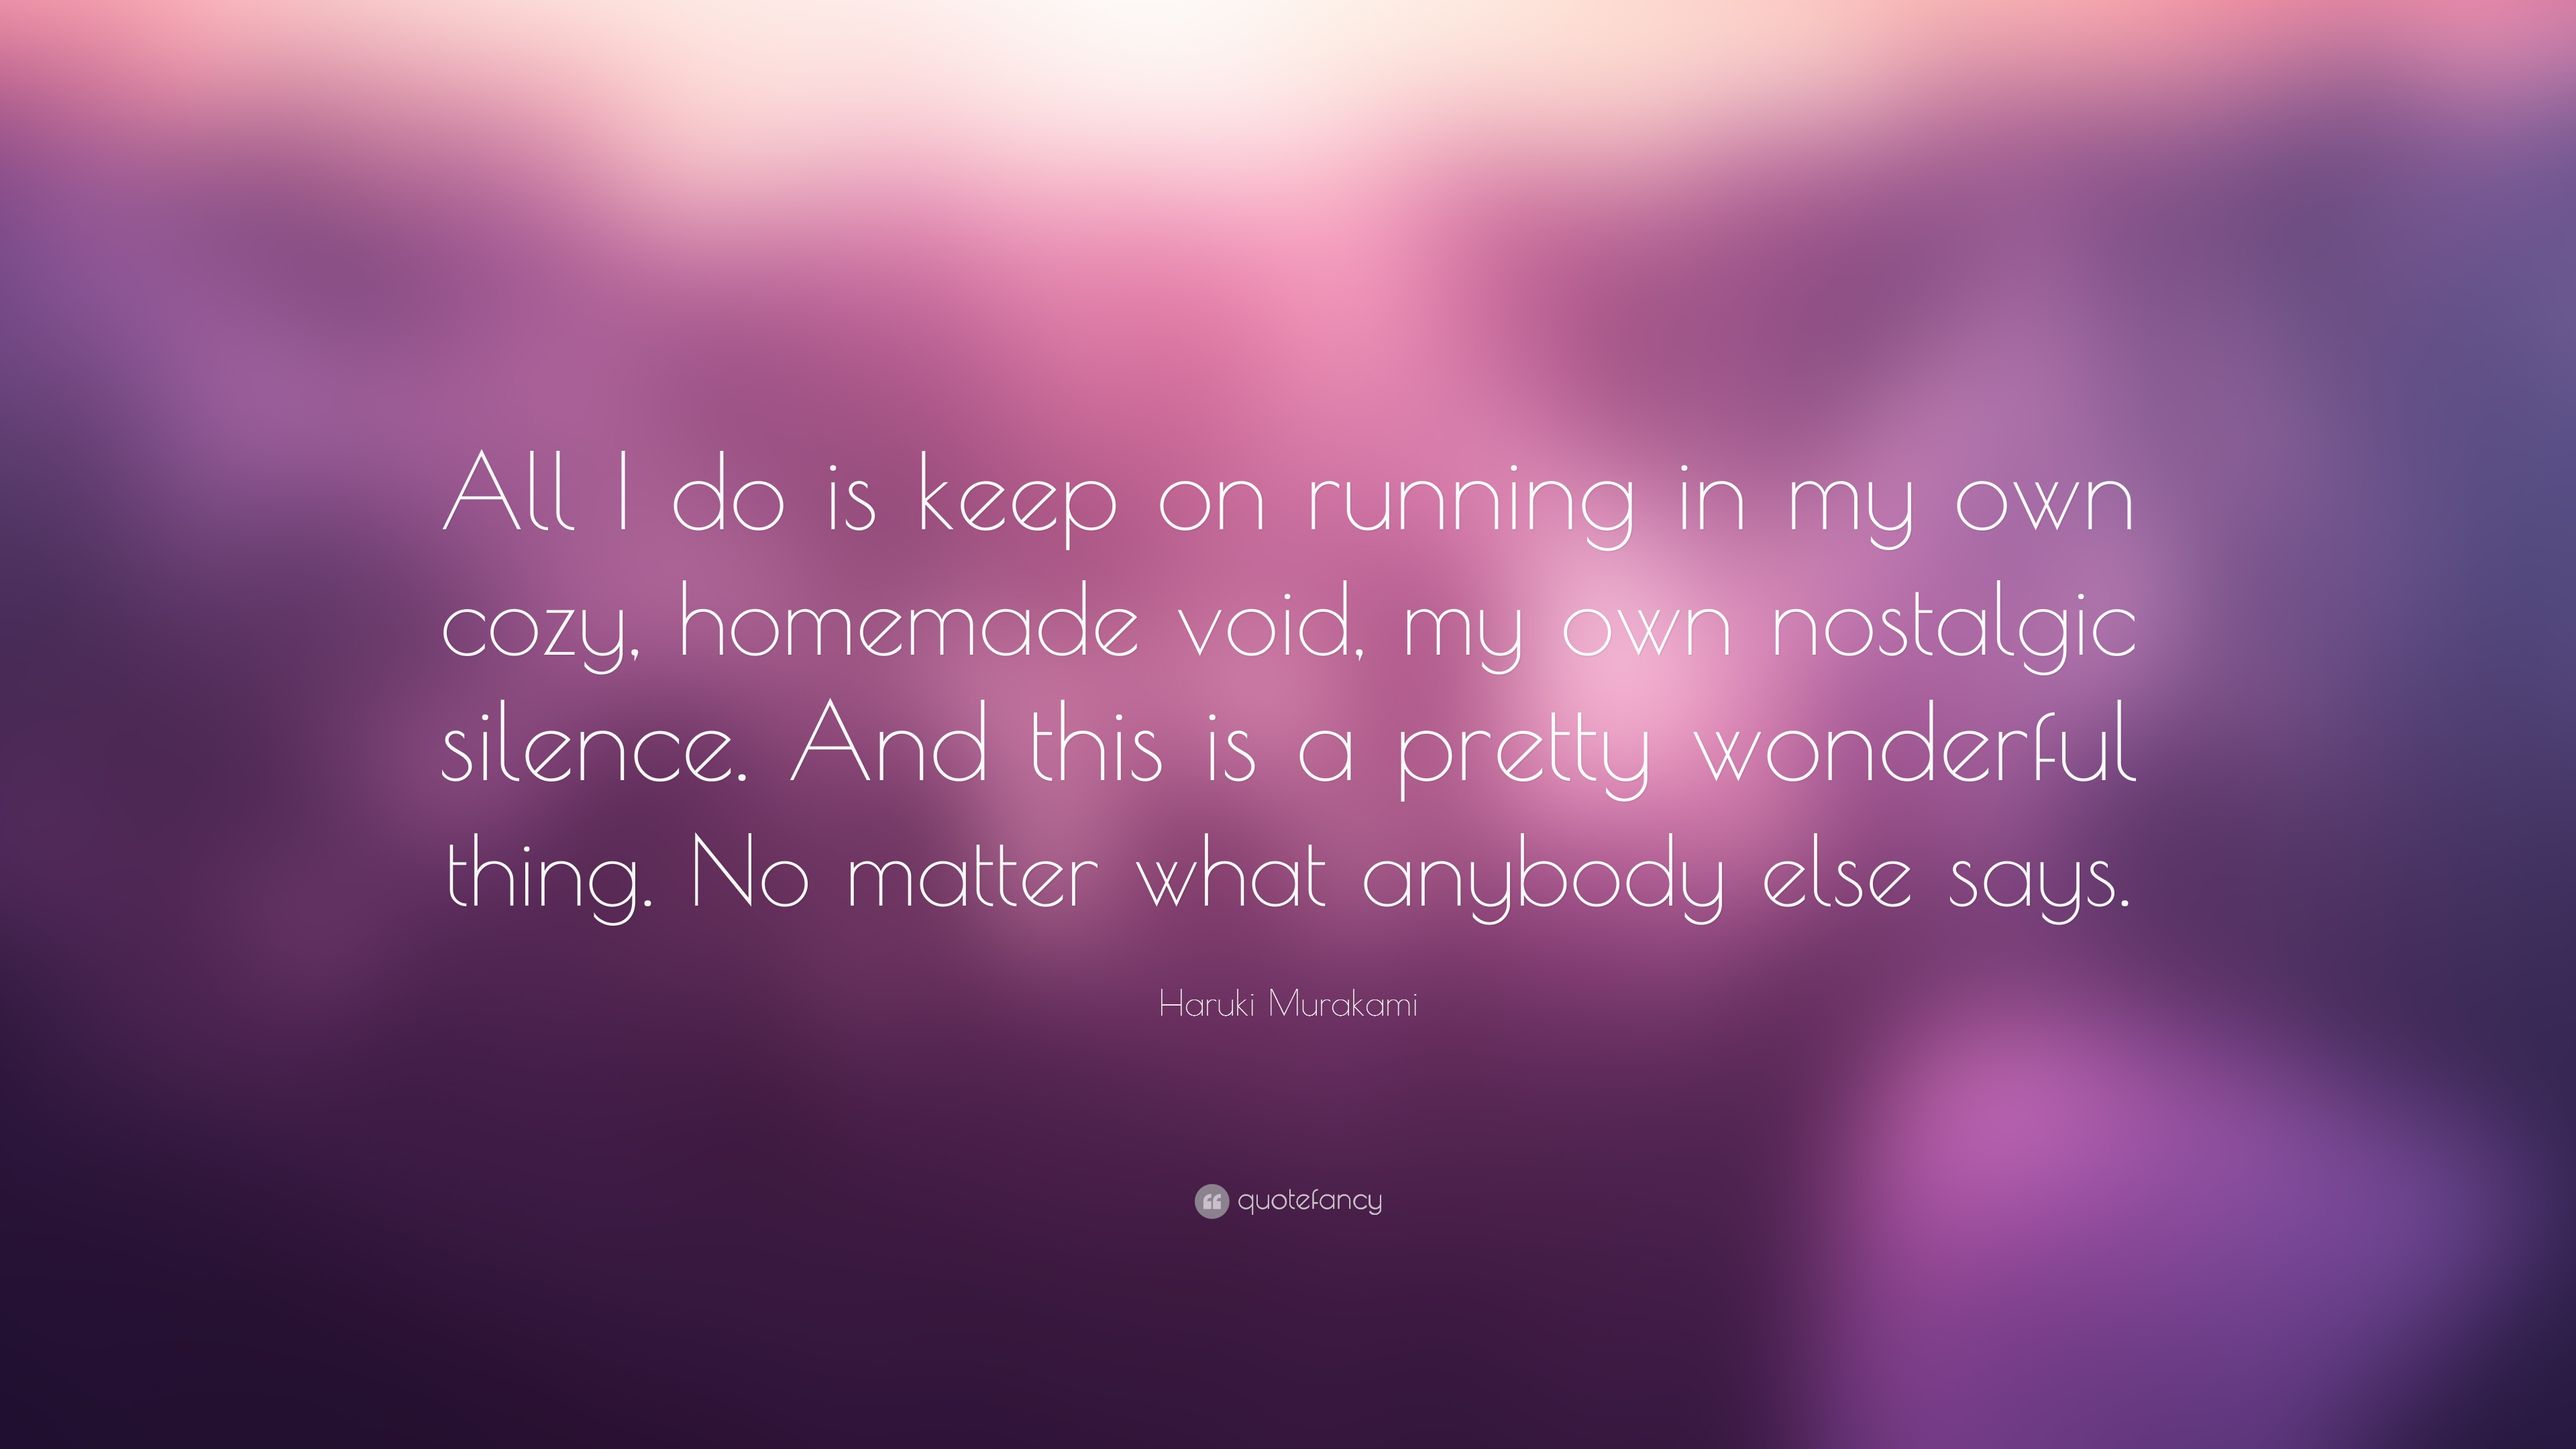 Haruki Murakami Quote All I Do Is Keep On Running In My Own Cozy